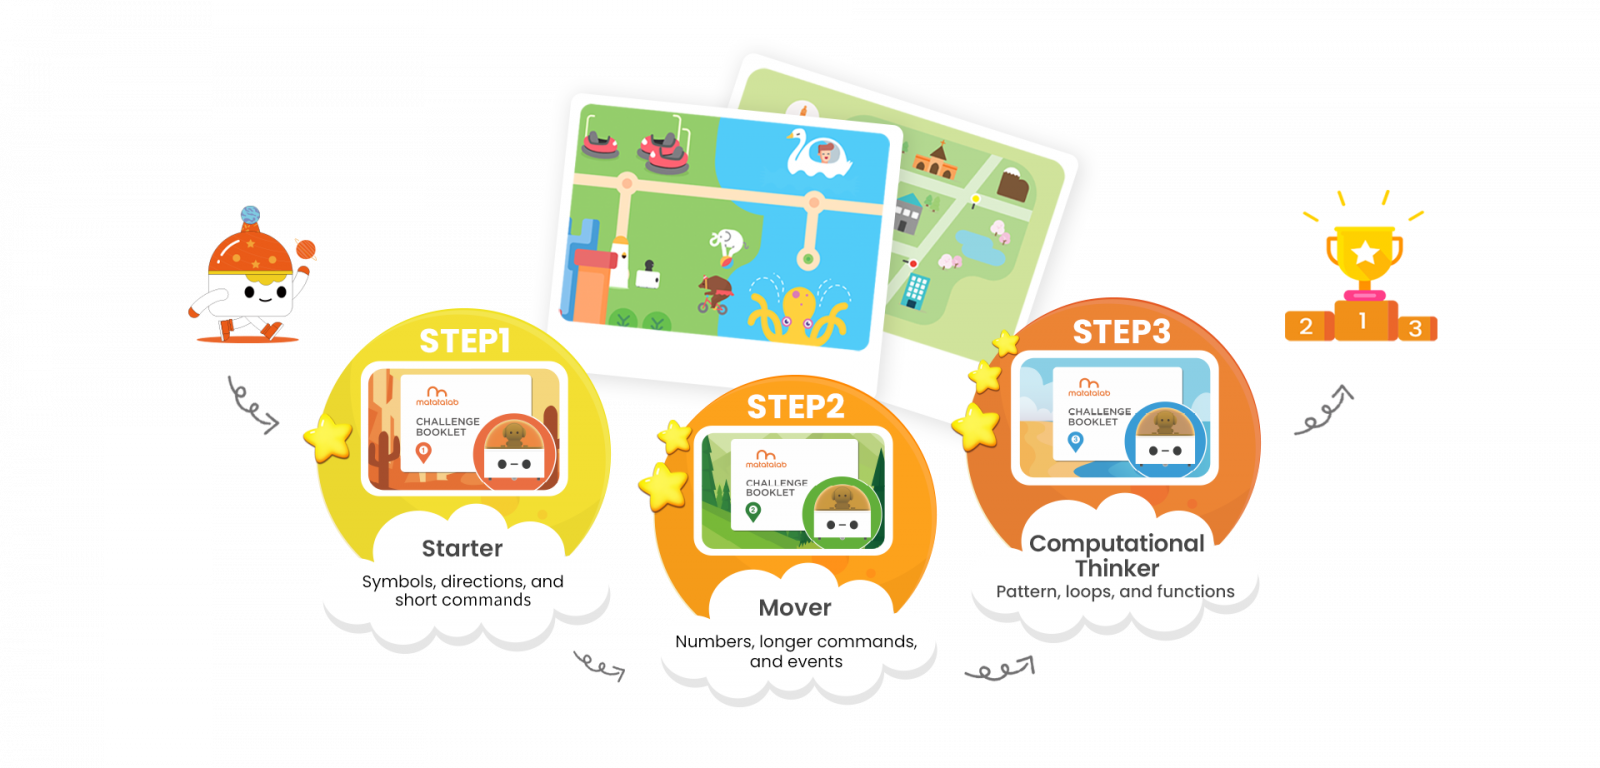 Learning Steps of Robotics for Kids - Matatalab